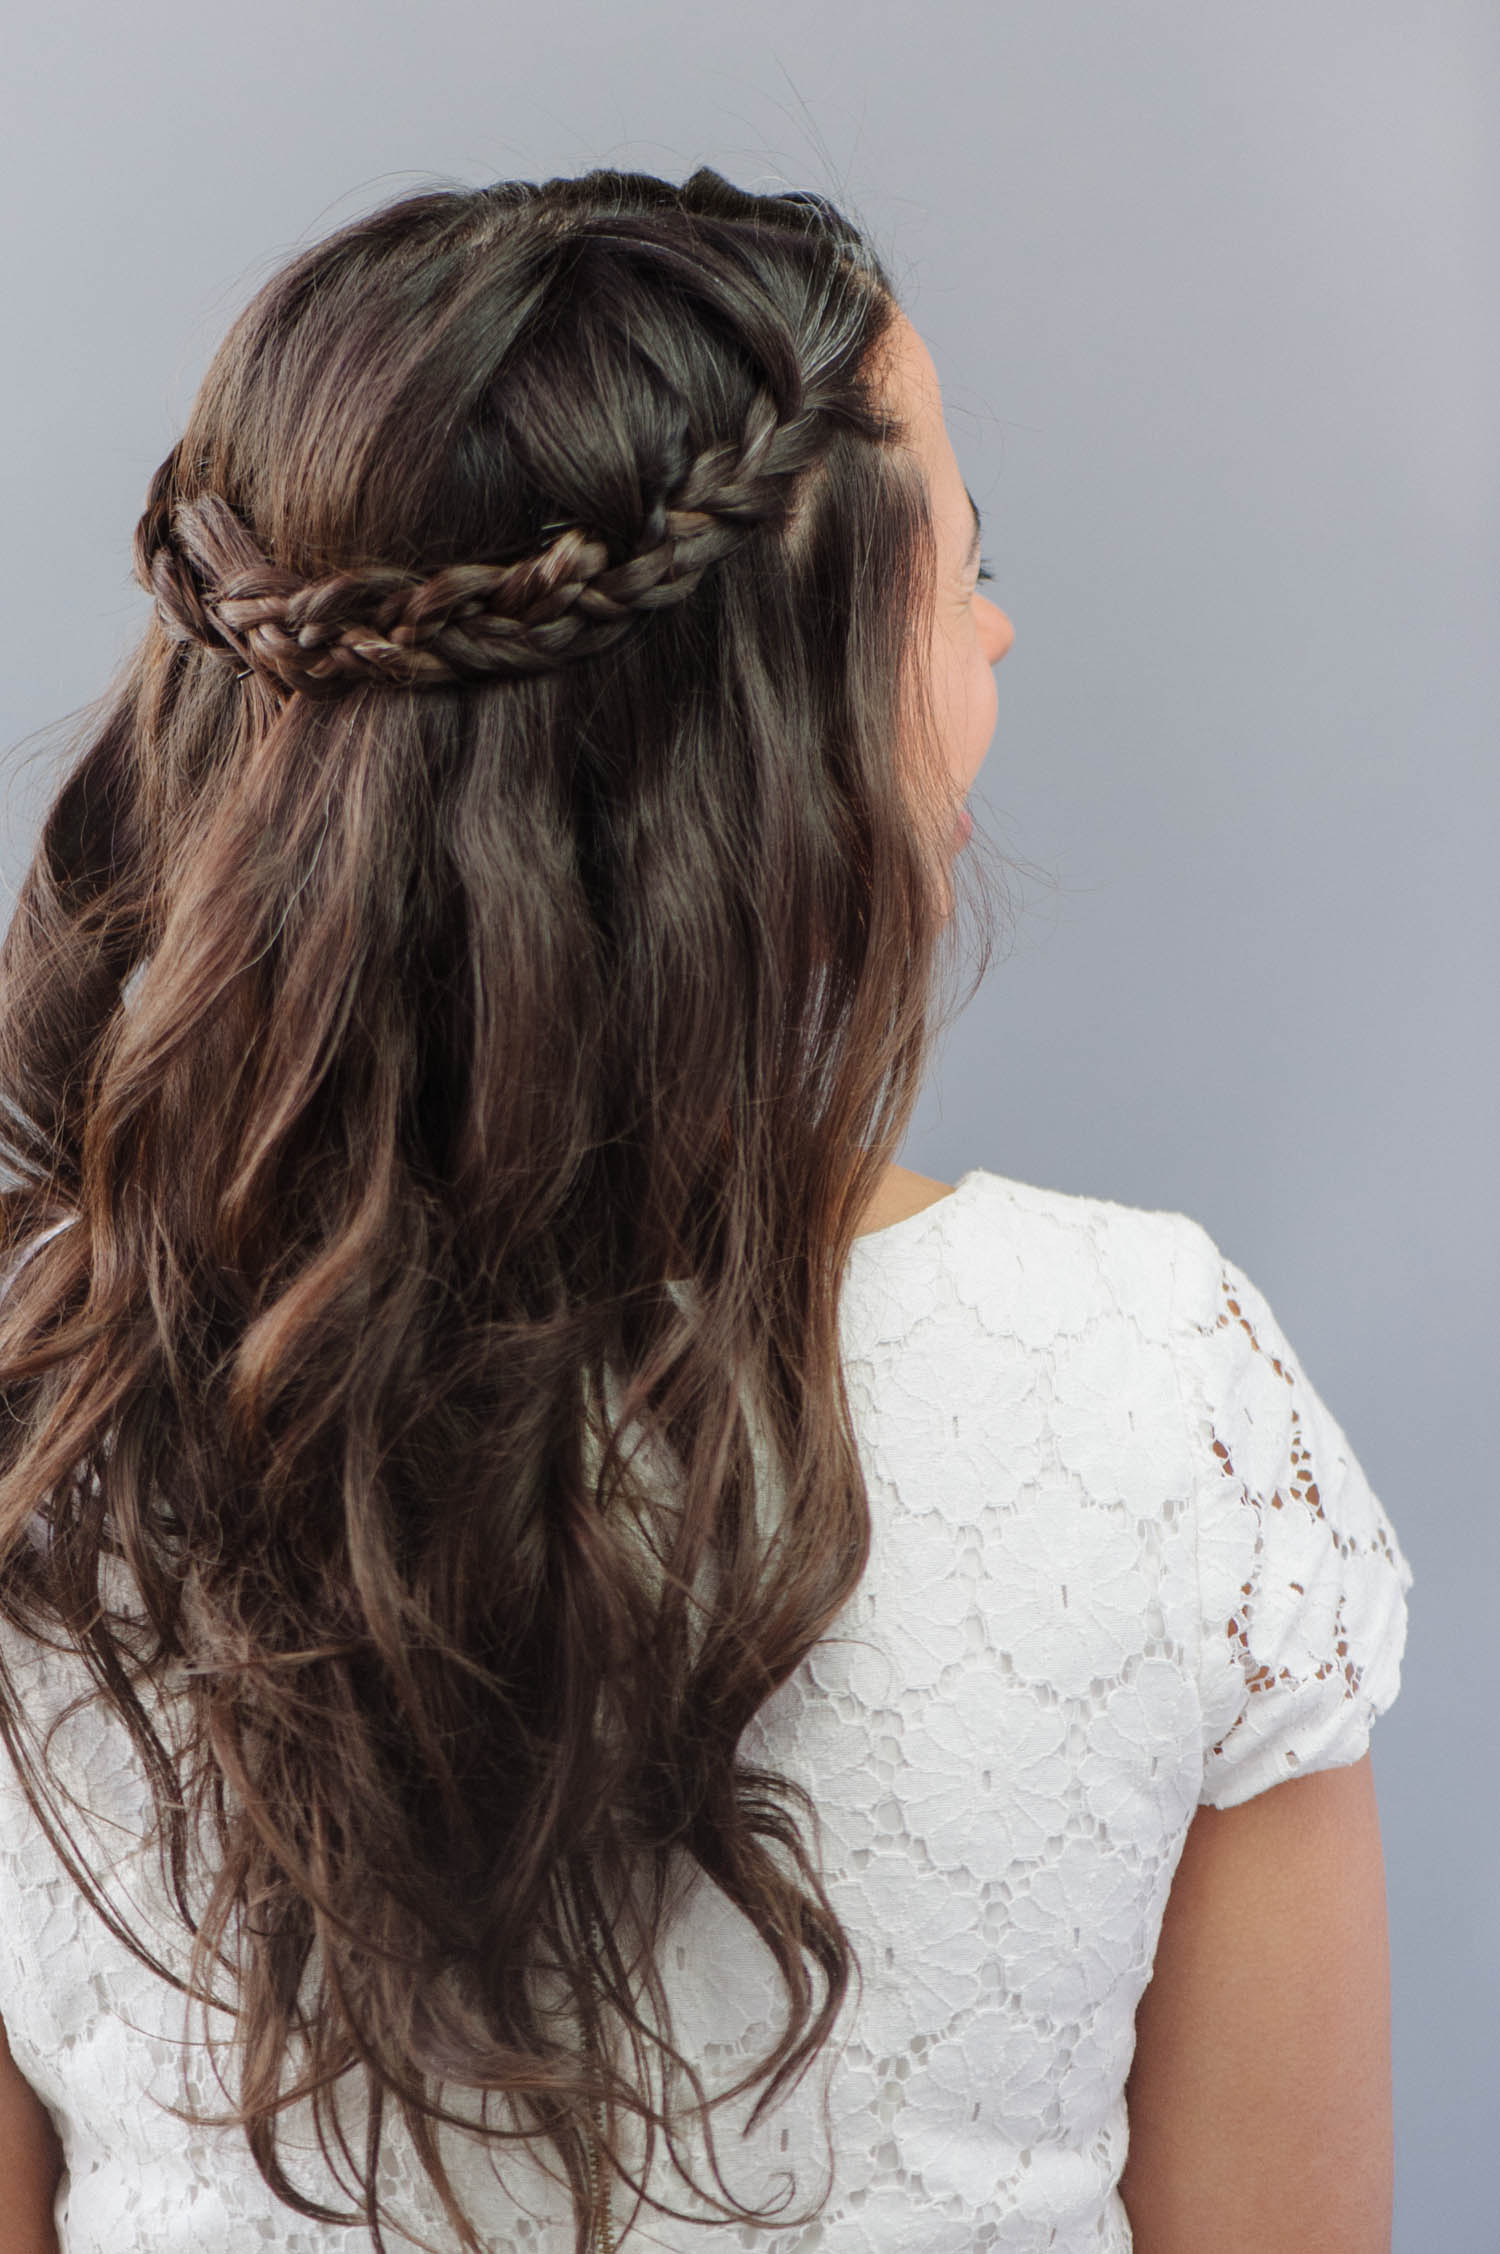 How To  Braided Wedding Hair for Beginners   A Practical Wedding Half up half down hair is the easiest way to have your cake and eat it too   Add braids and suddenly that cake is ice cream cake  a k a  a hundred times  more